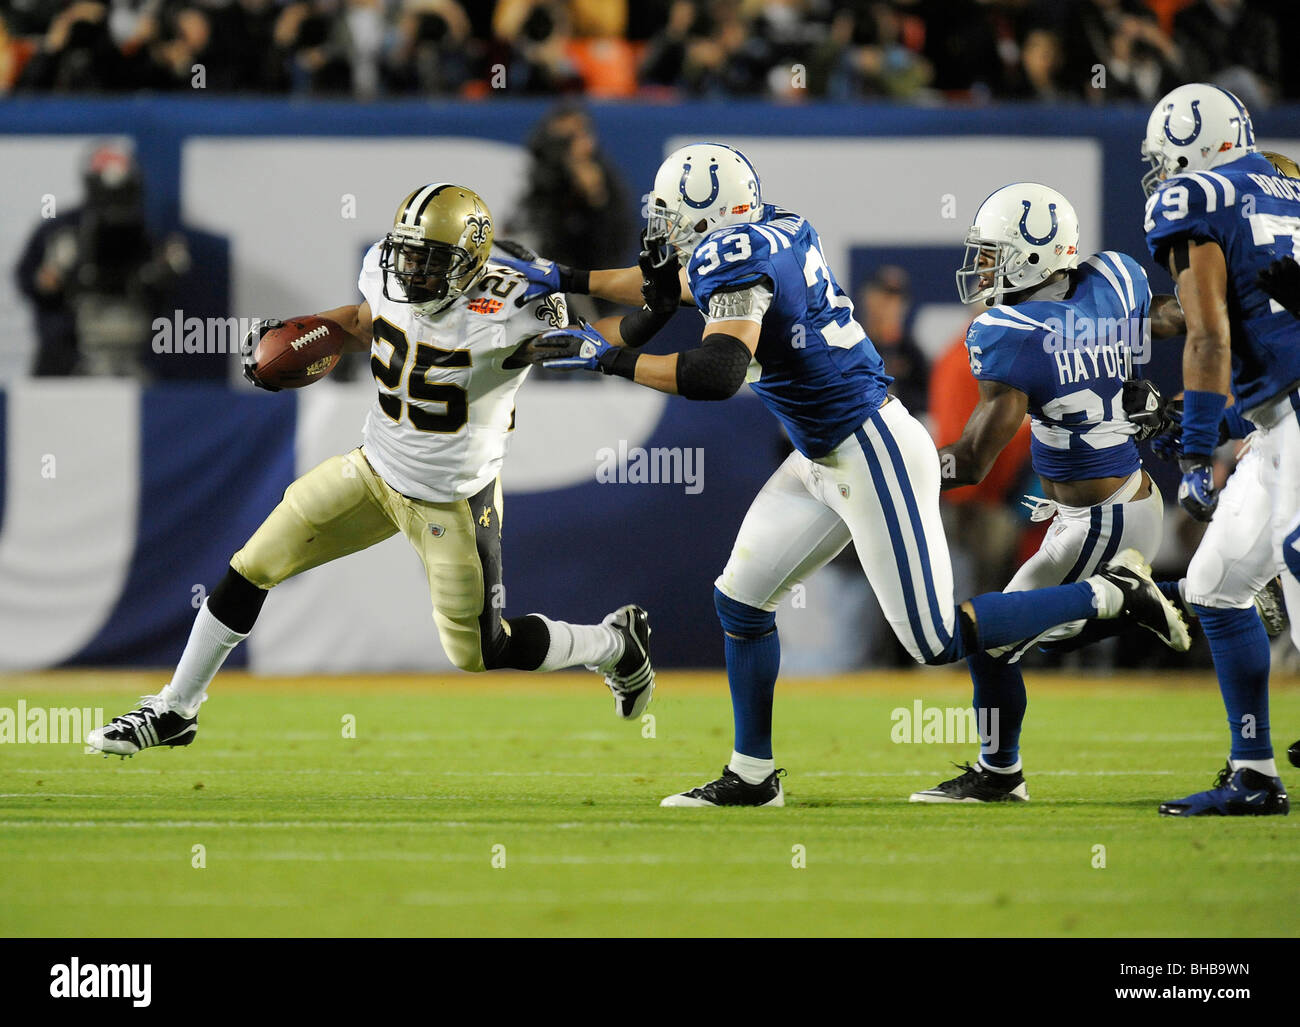 Reggie Bush #25 of the New Orleans Saints rushes as Melvin Bullitt #33 of the Indianapolis Colts defends in Super - Stock Image